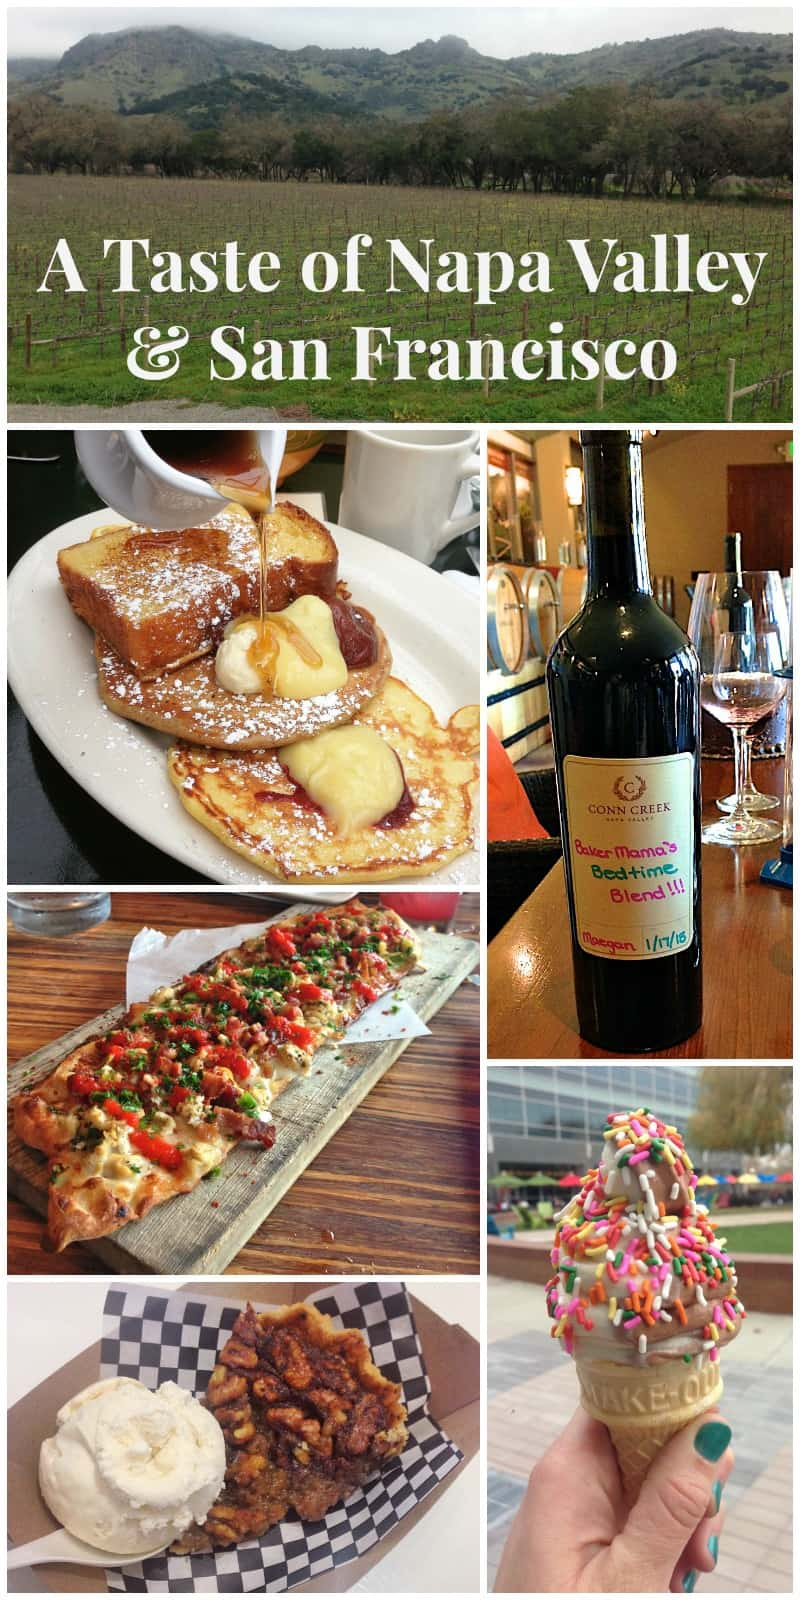 A Taste of Napa Valley and San Francisco - The BakerMama